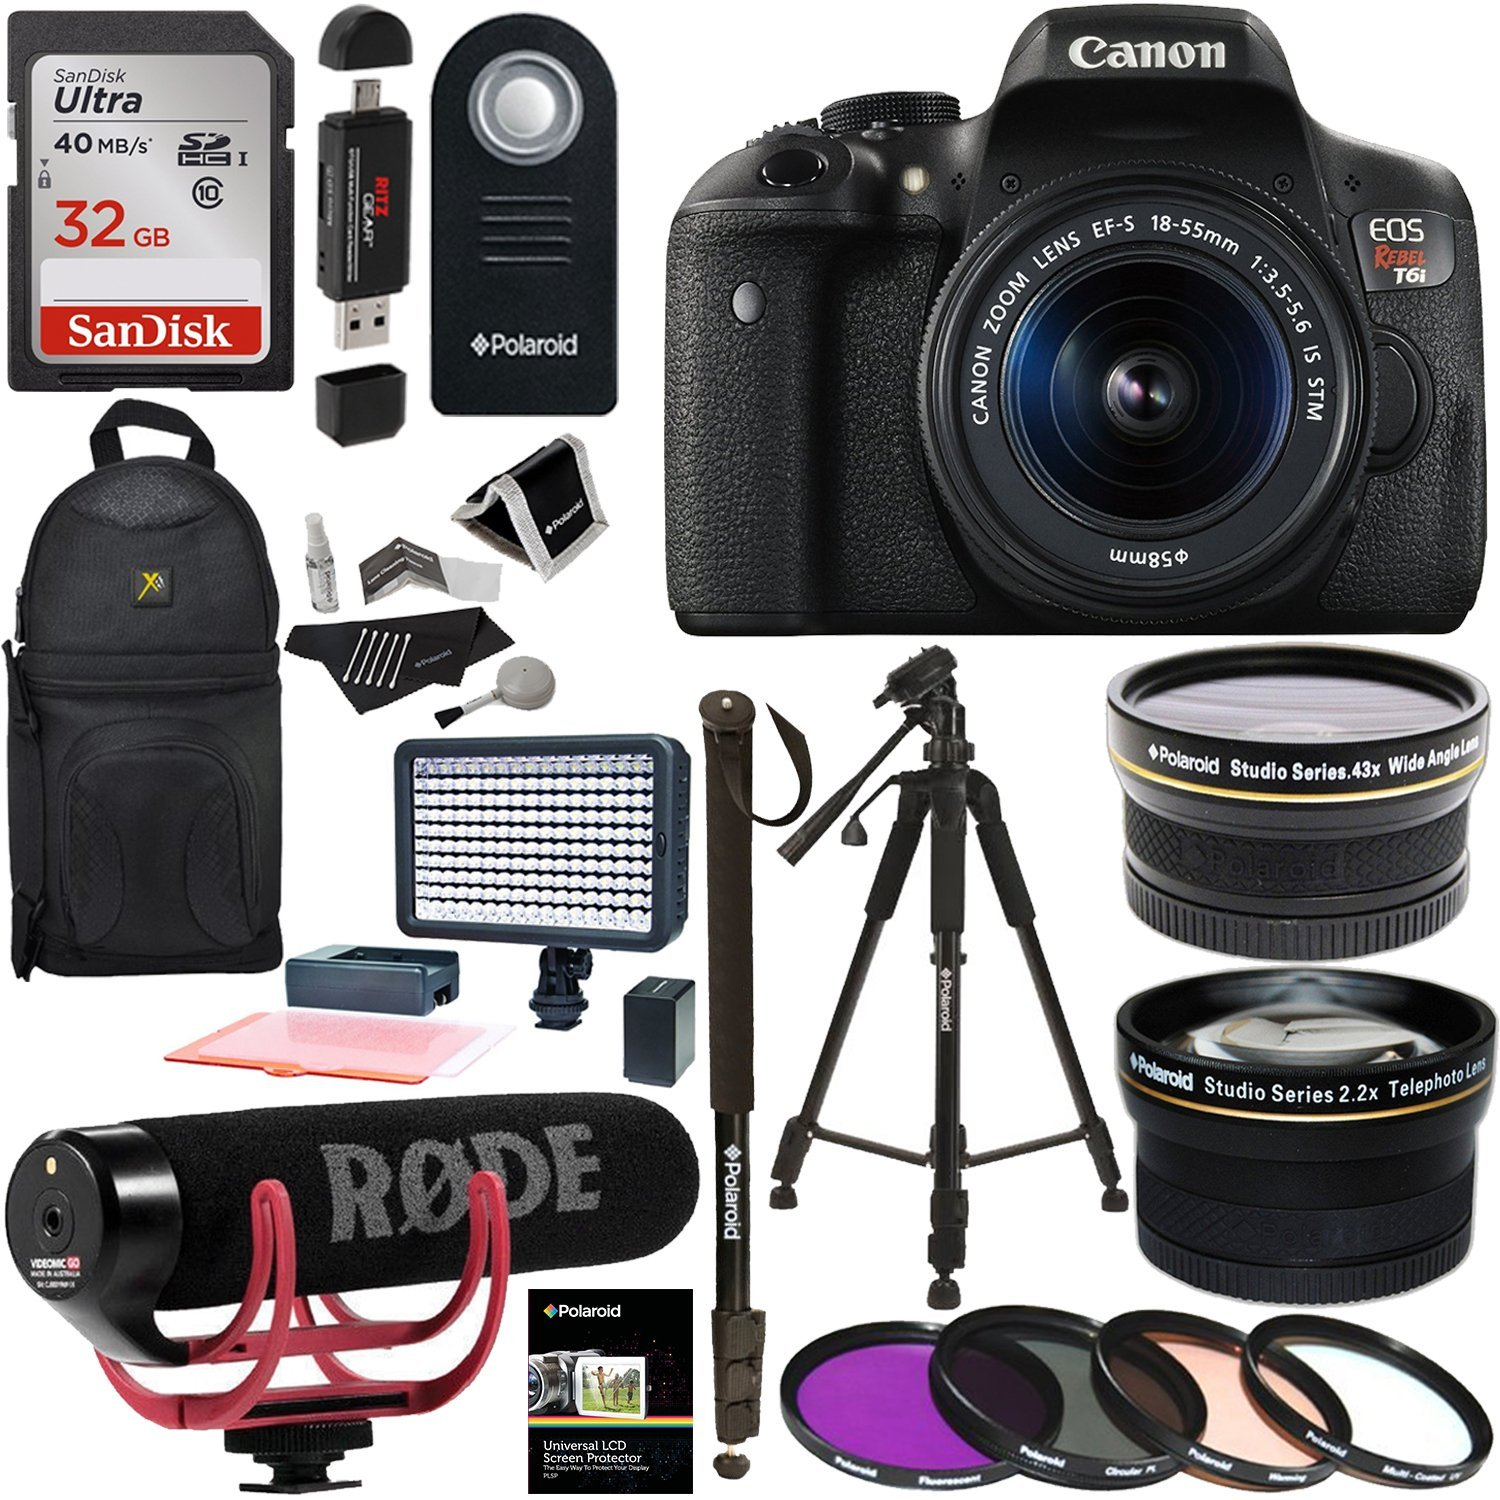 Canon EOS Rebel T6i Video Creator Kit with 18-55mm Lens +...